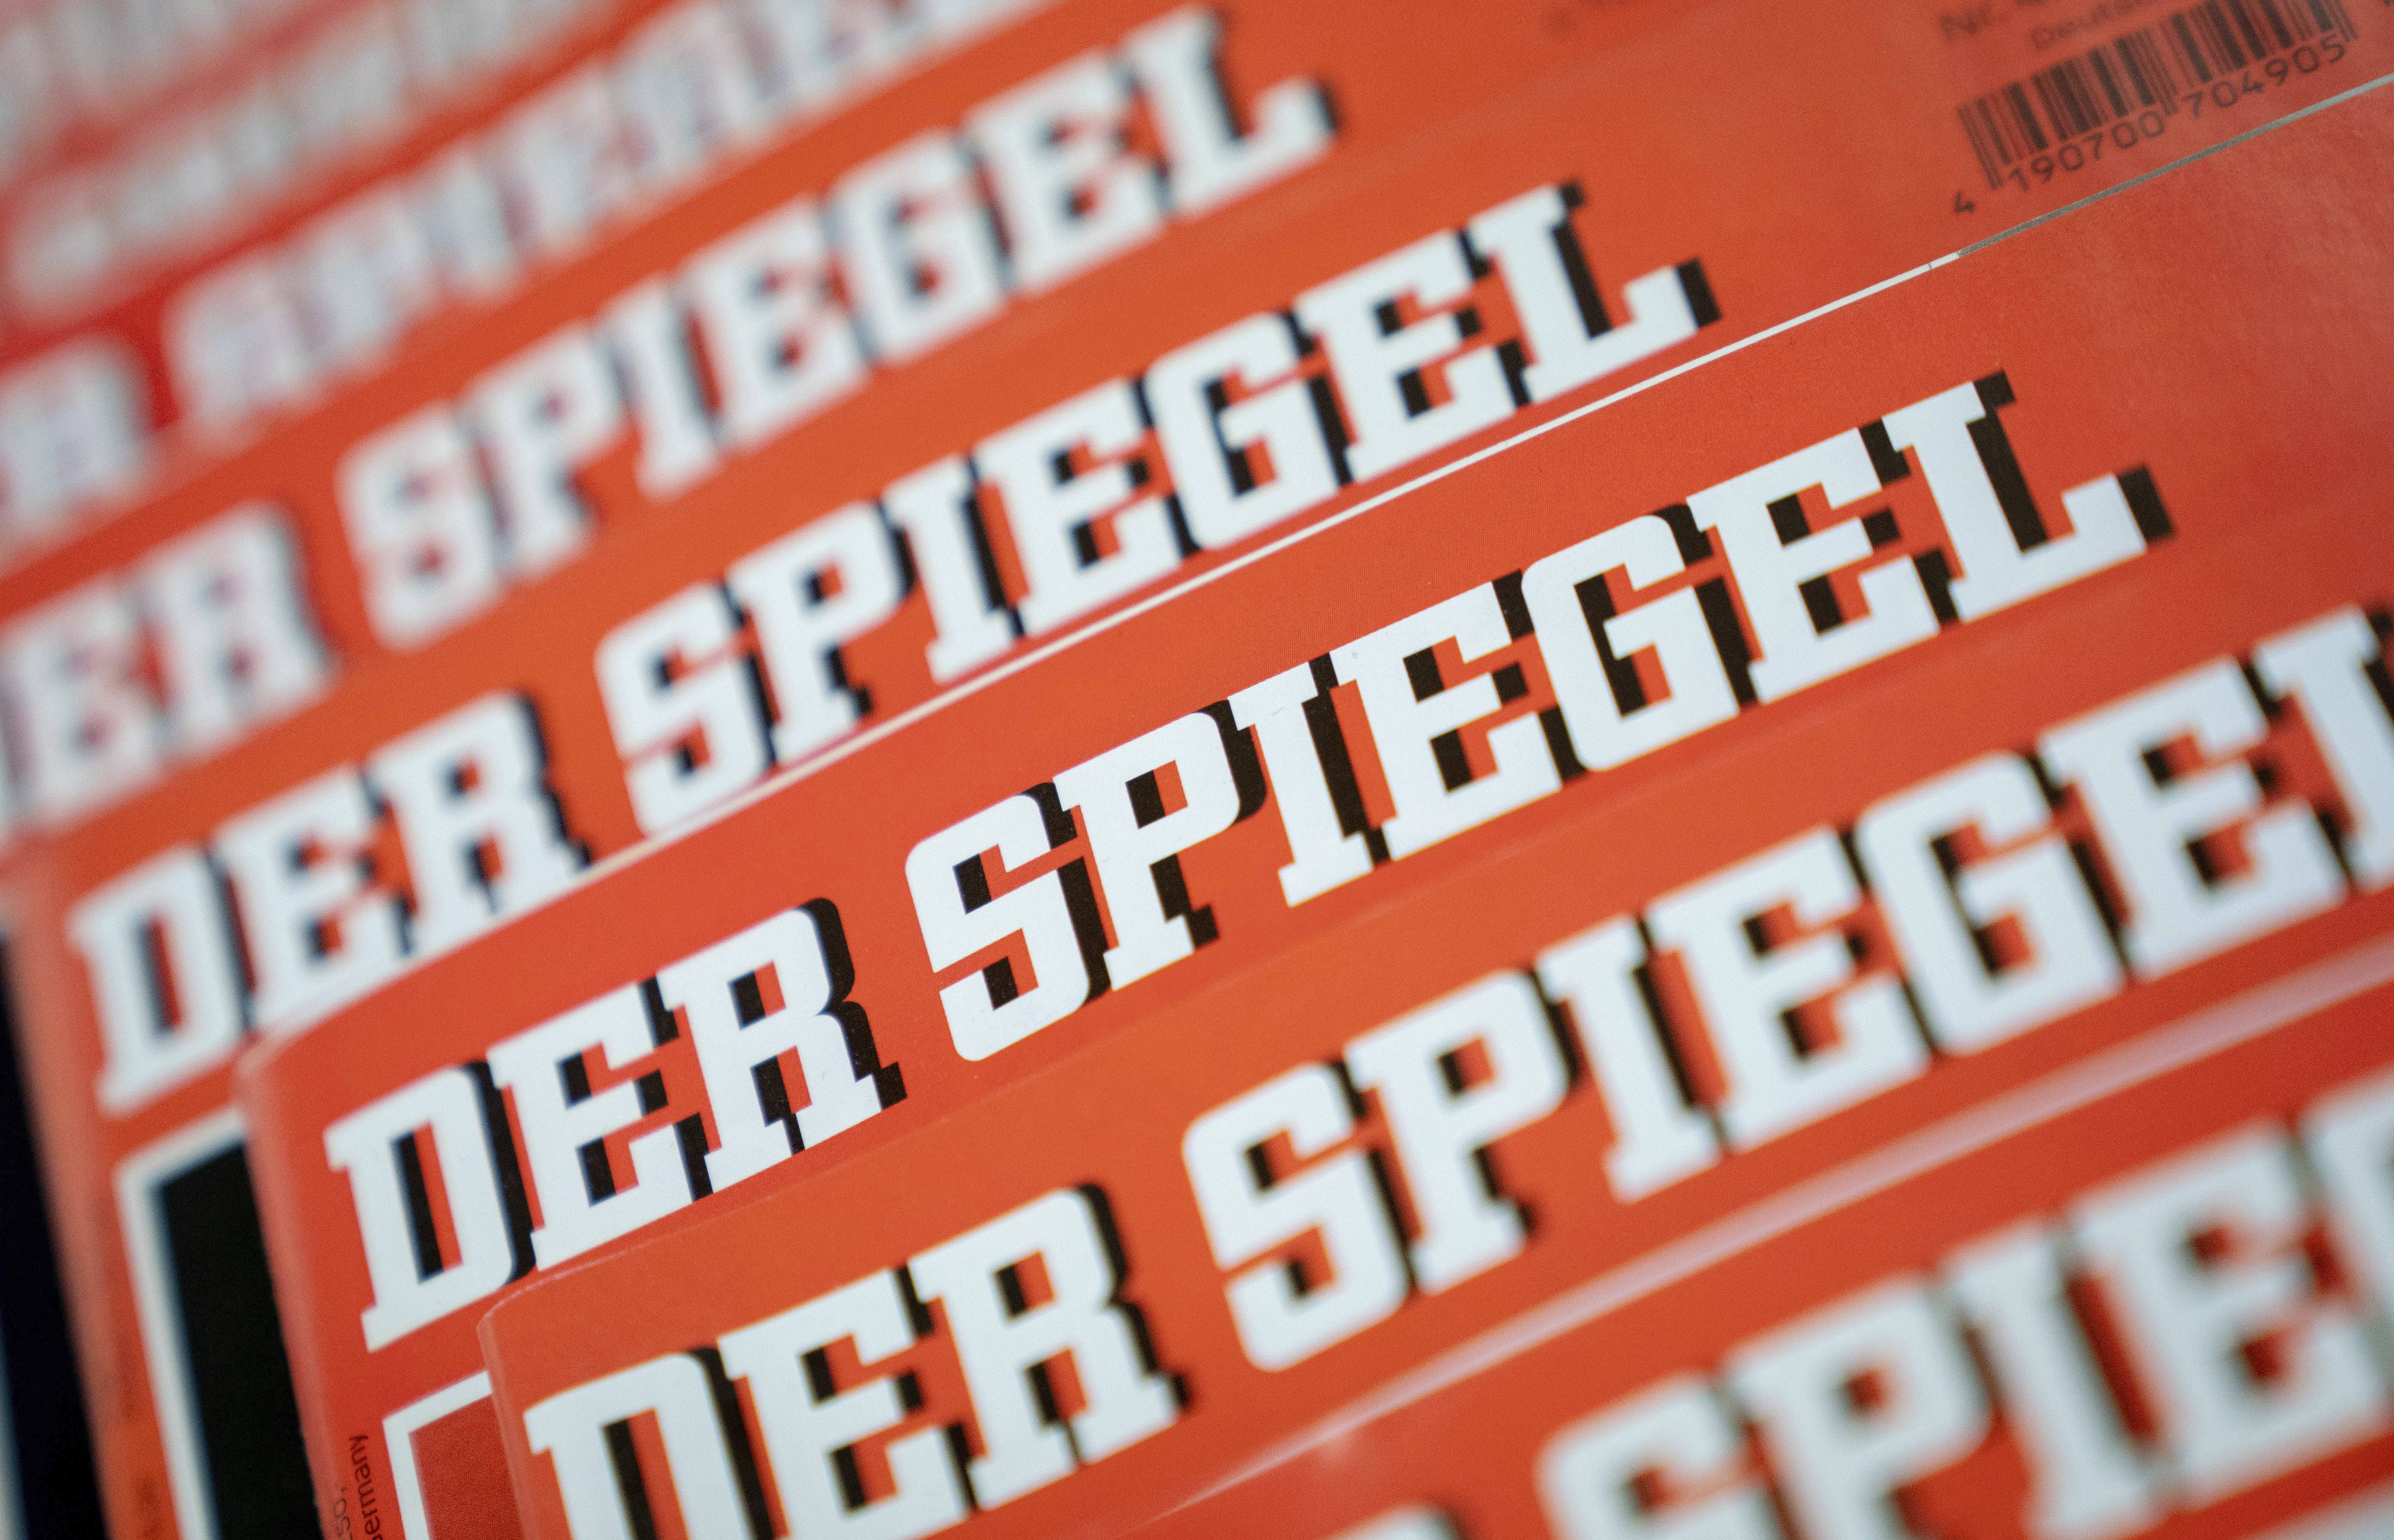 "The Dec. 19, 2018 photo shows issues of German news magazine Spiegel arranged on a table in Berlin. An award-winning journalist who worked for Der Spiegel, one of Germany's leading news outlet, has left the publication after being found to have committing what the weekly described Wednesday as journalistic fraud ""on a grand scale"" over a number of years. (Kay Nietfeld/dpa via AP)"